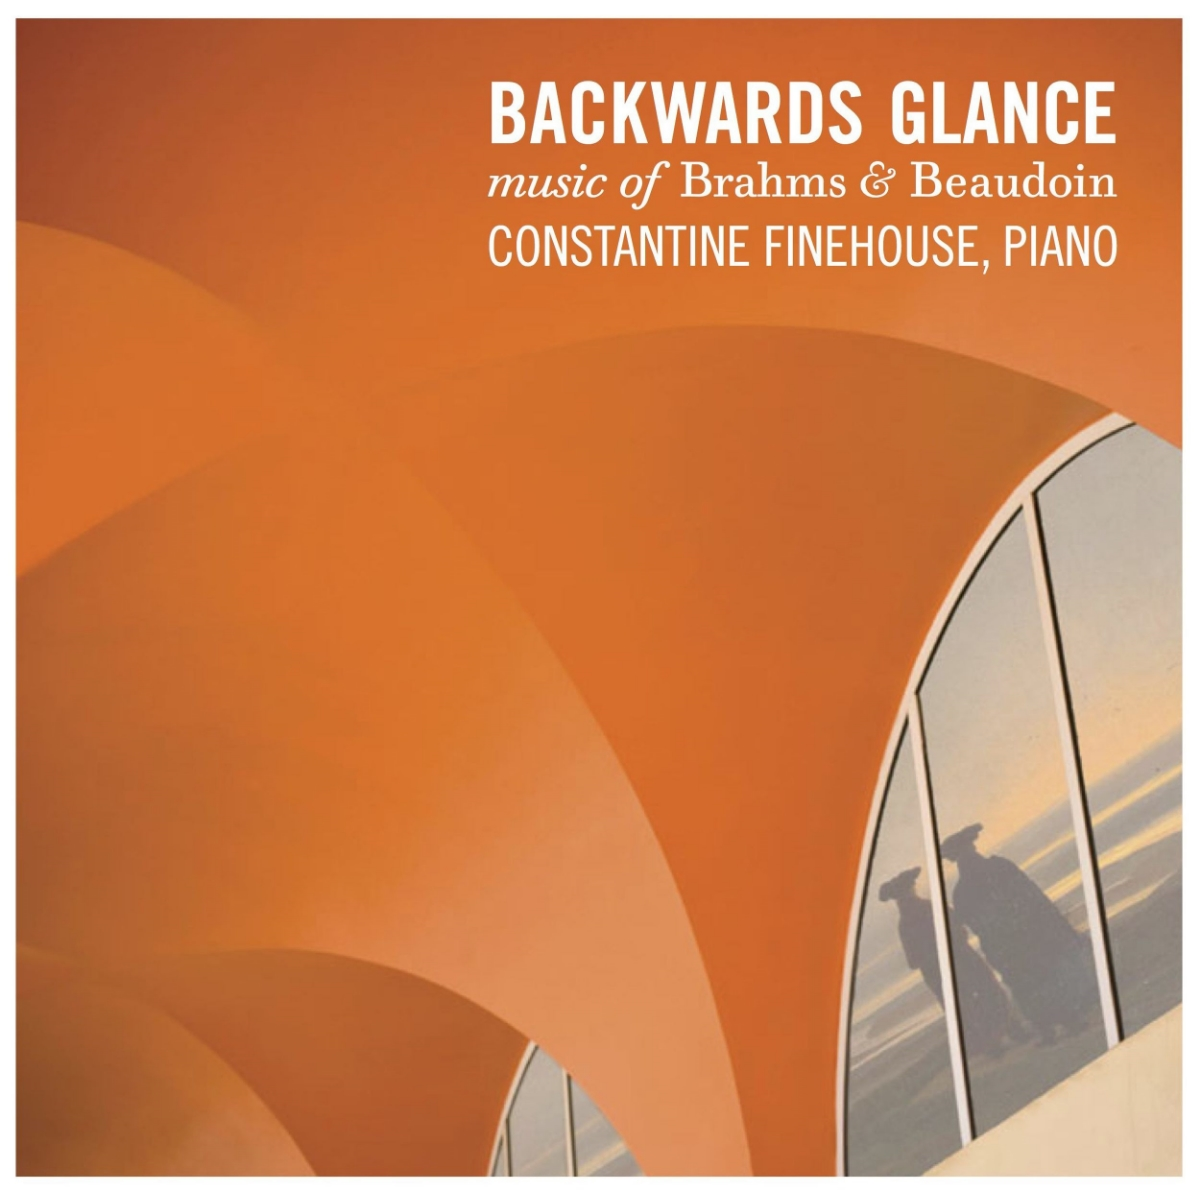 Backwards Glance Cover.jpg